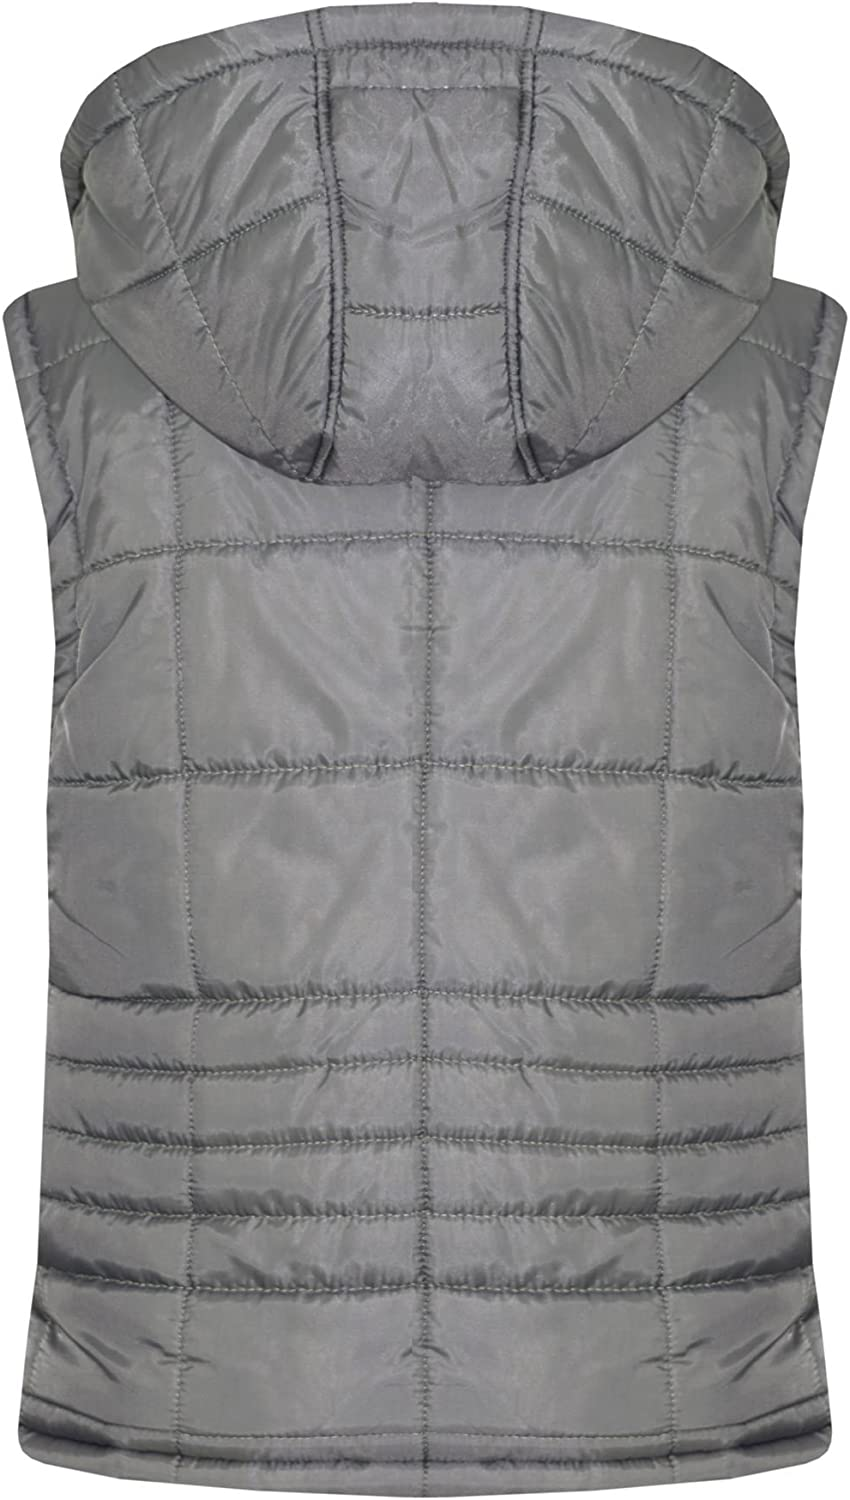 A2Z 4 Kids/® Kids Girls Boys Designers Steel Grey Sleeveless Hooded Padded Quilted Lined Gilet Bodywarmer Fashion Jackets Age 5 6 7 8 9 10 11 12 13 Years